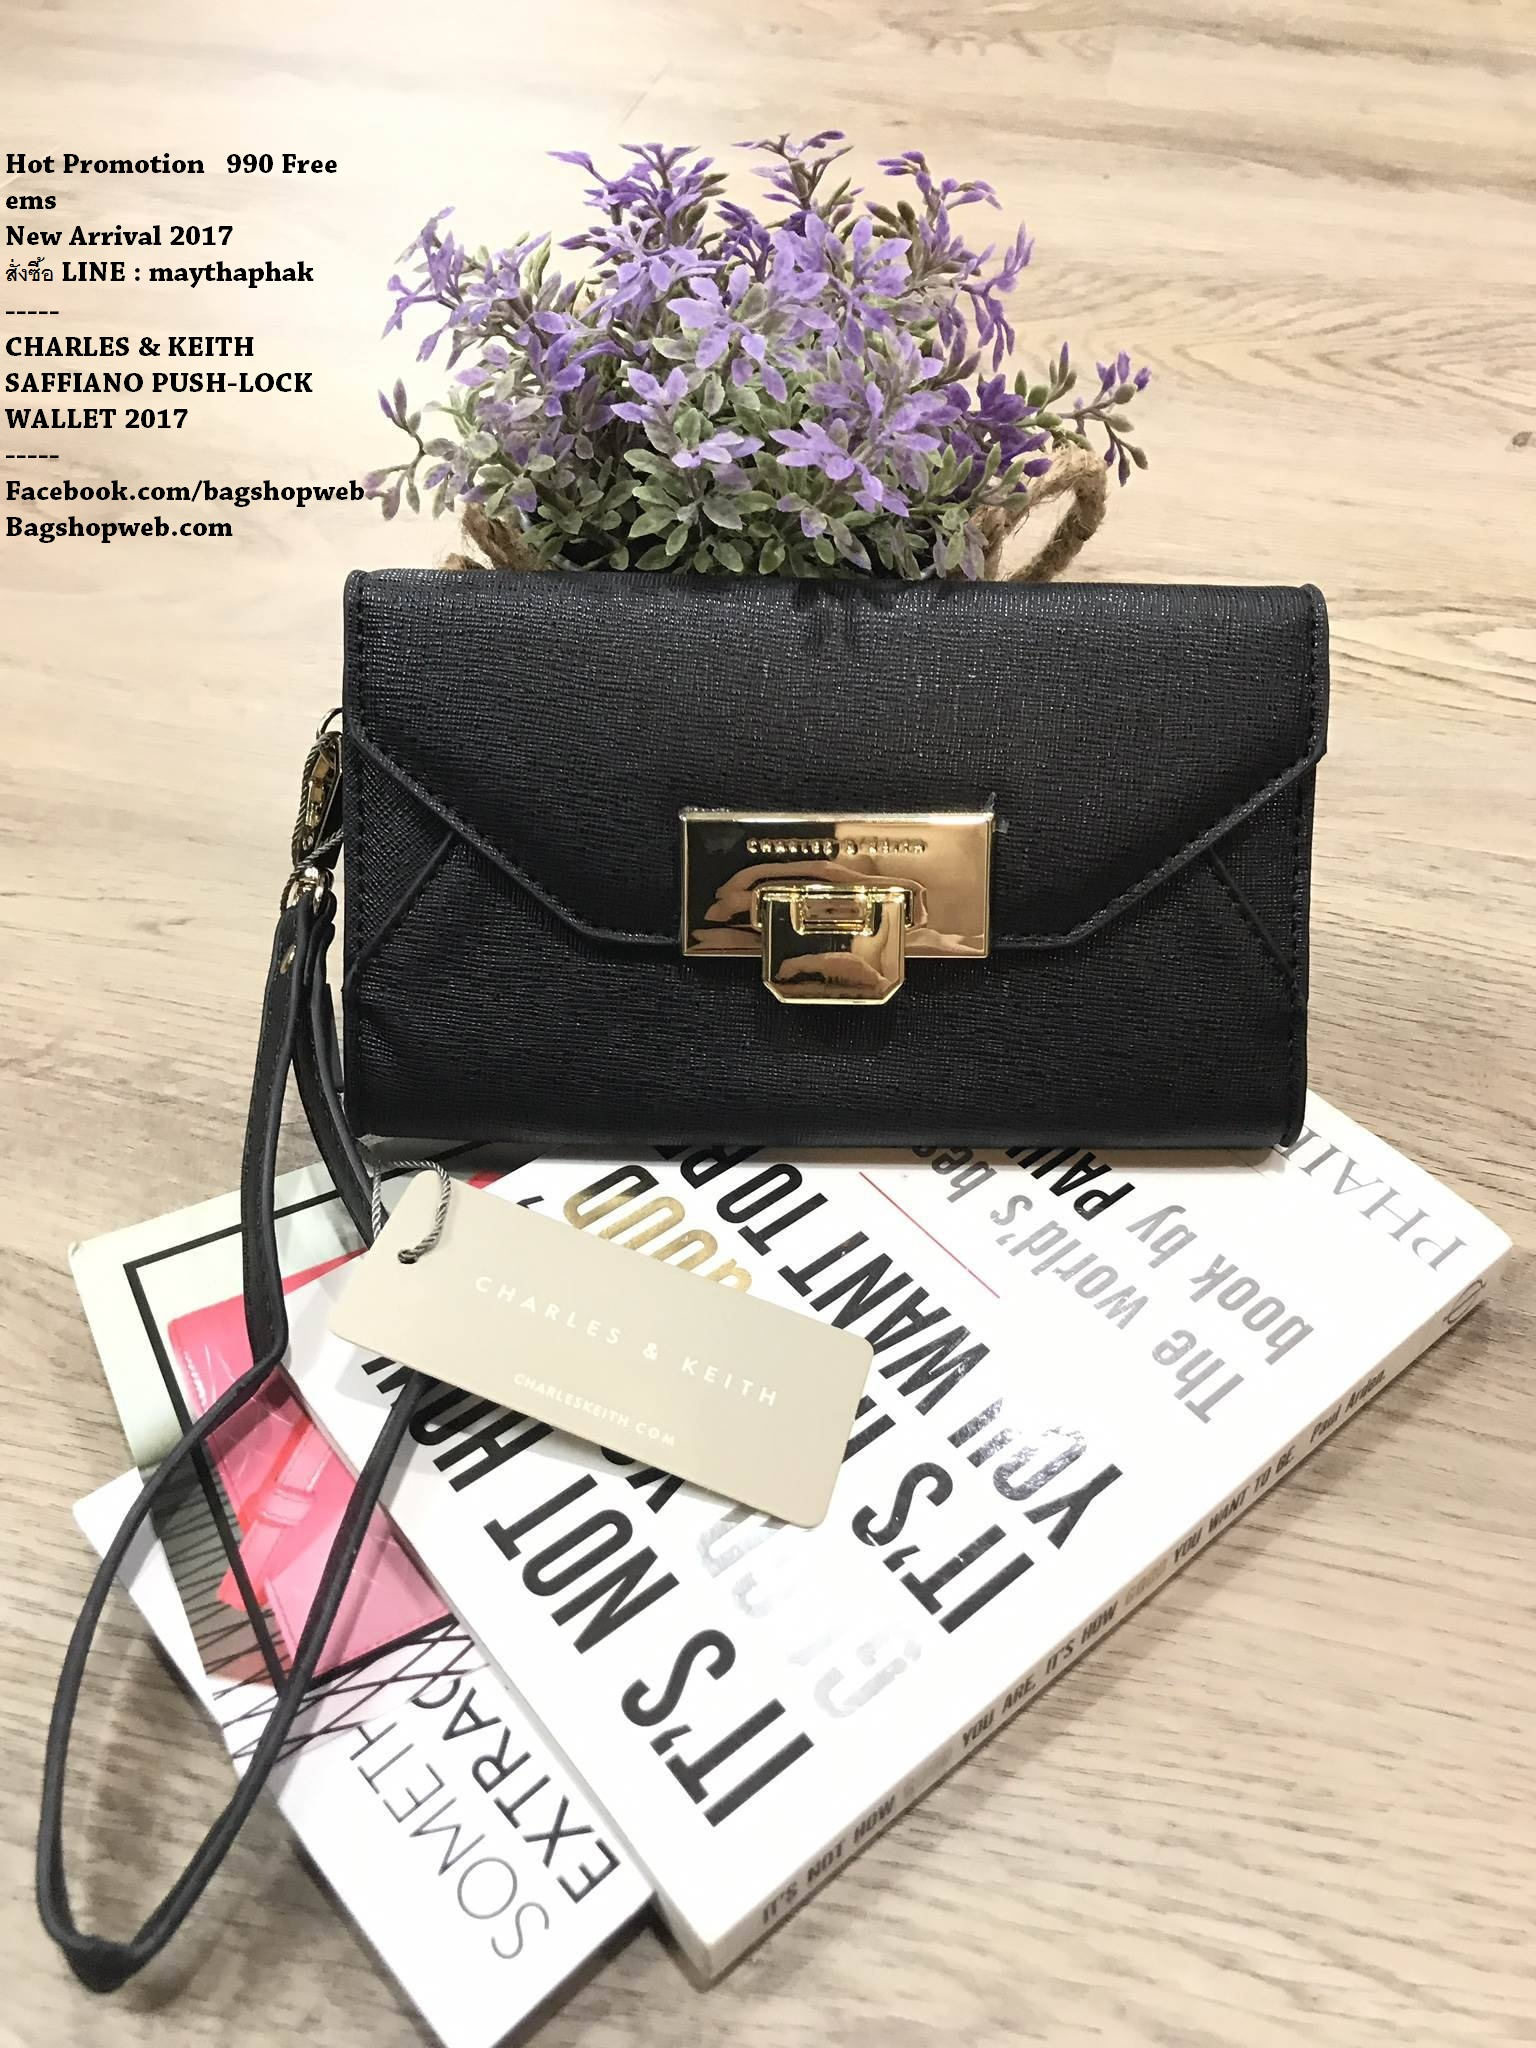 CHARLES & KEITH SAFFIANO PUSH-LOCK WALLET 2017